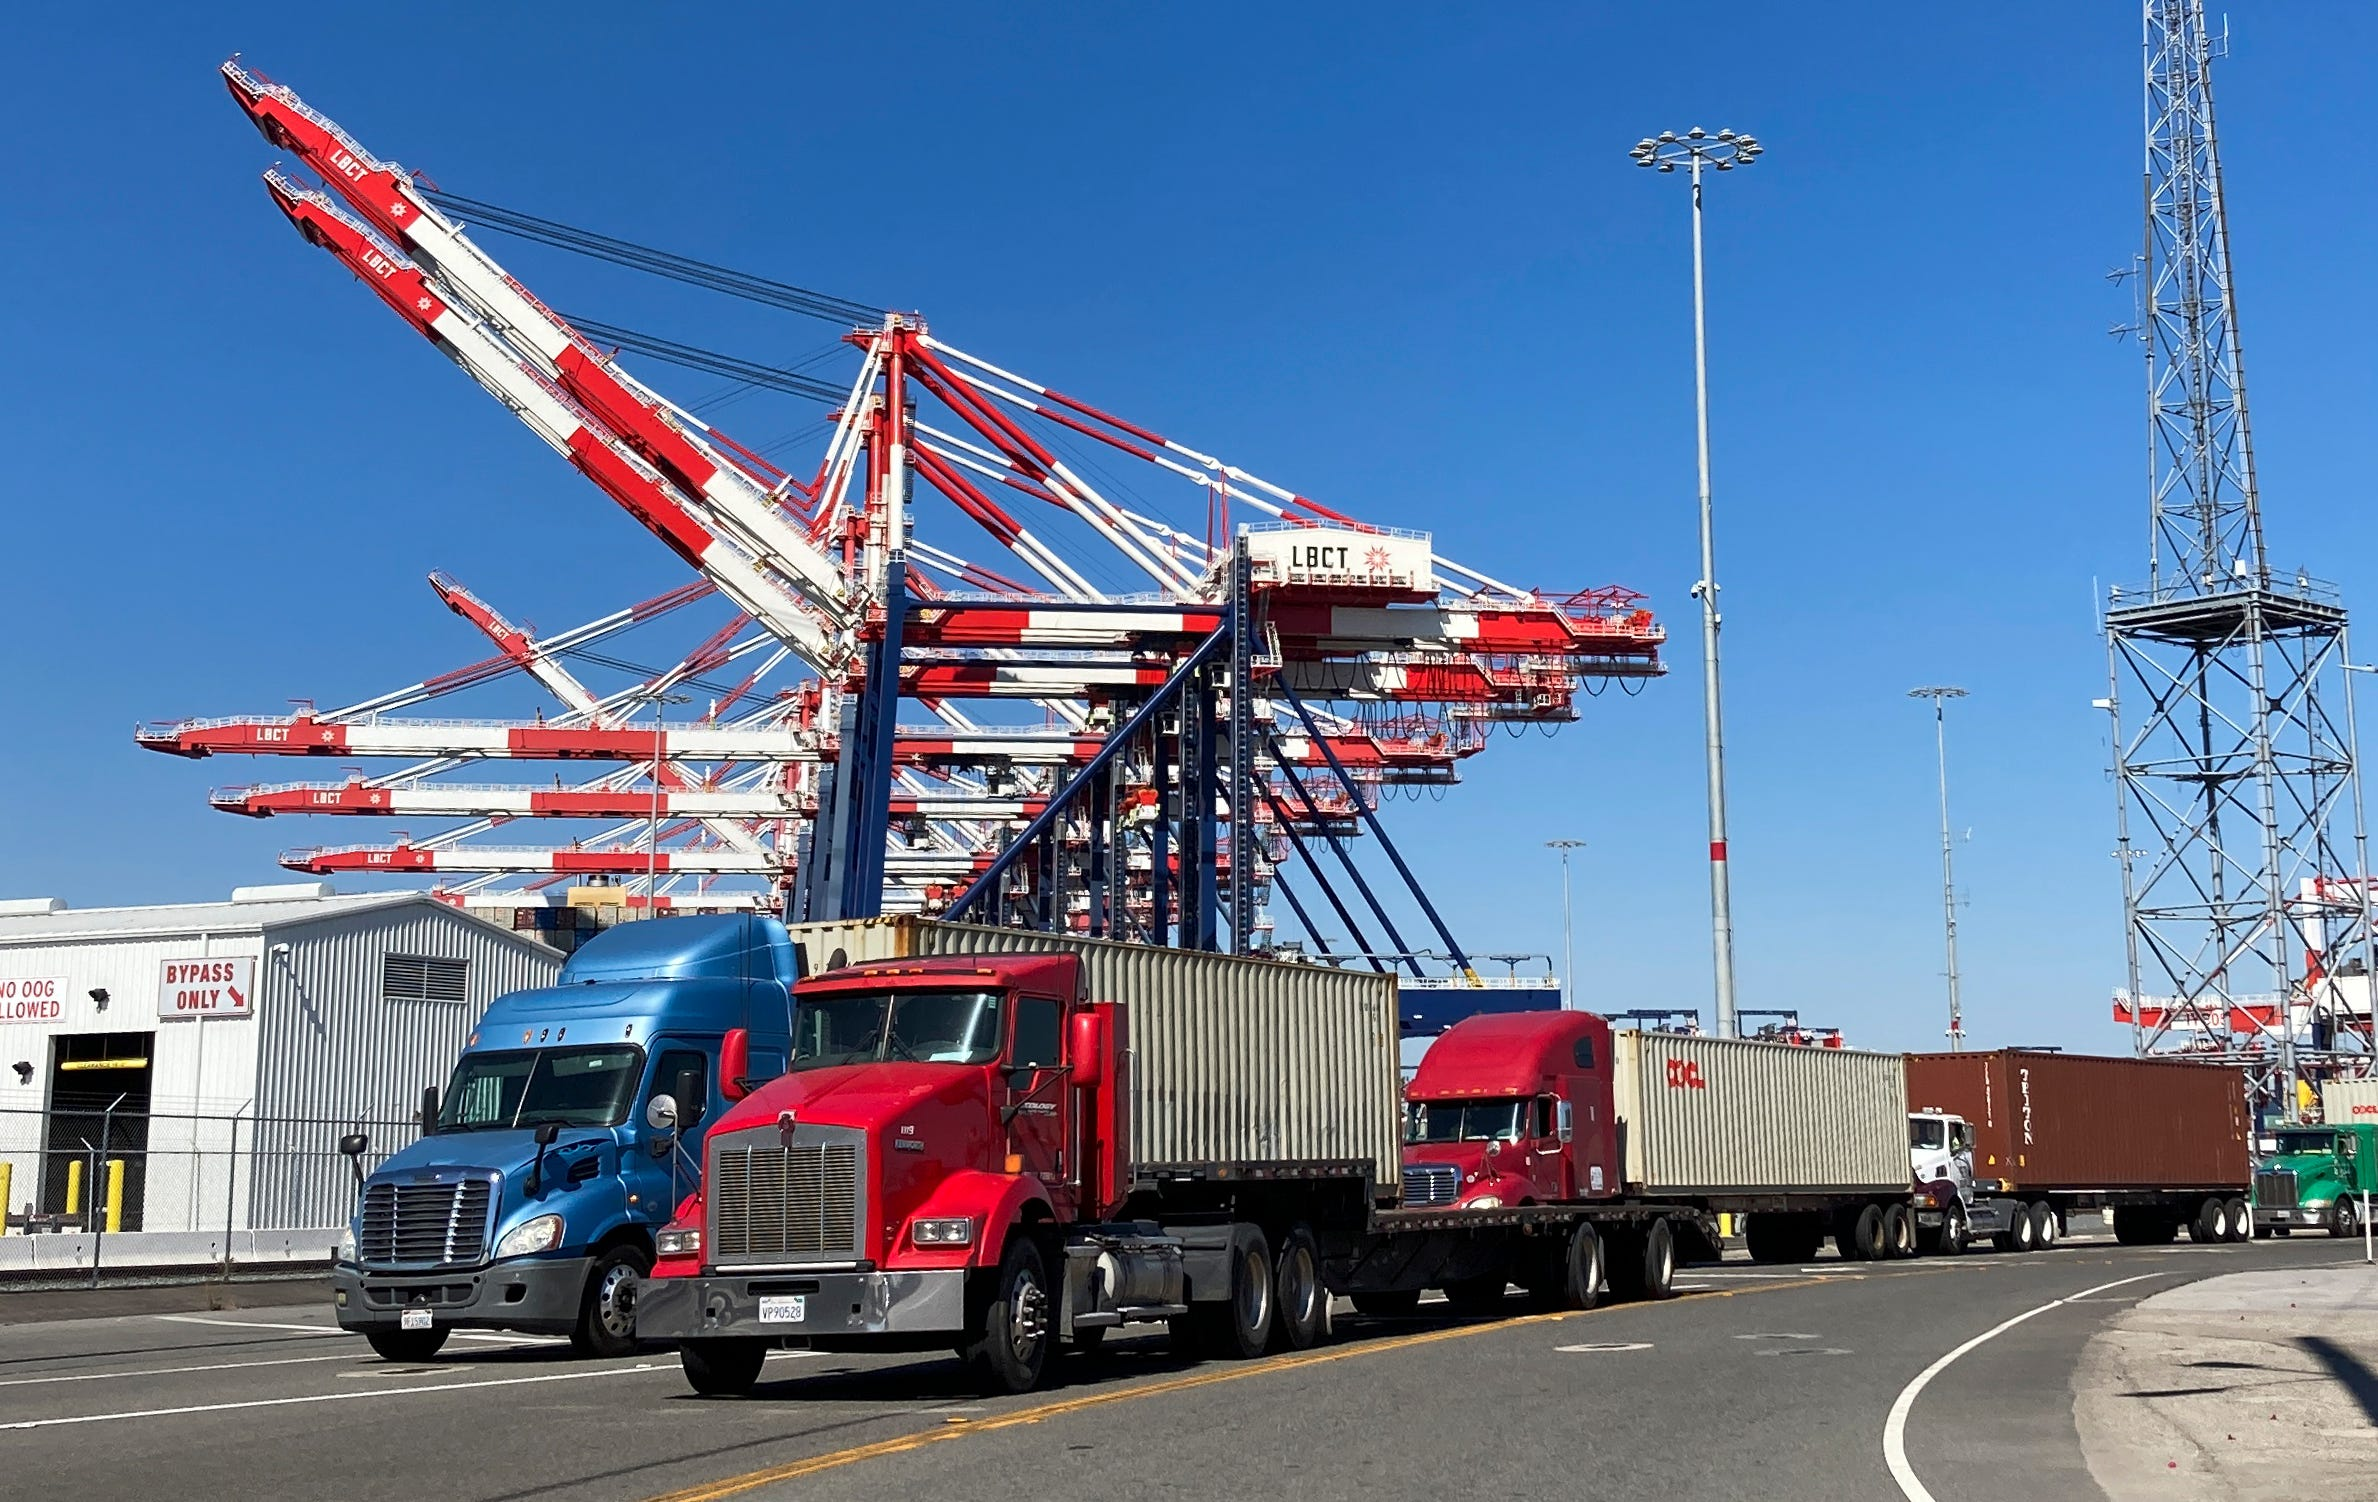 Biden says running LA ports 24/7 will help save Christmas shopping. It s not that simple, experts warn.